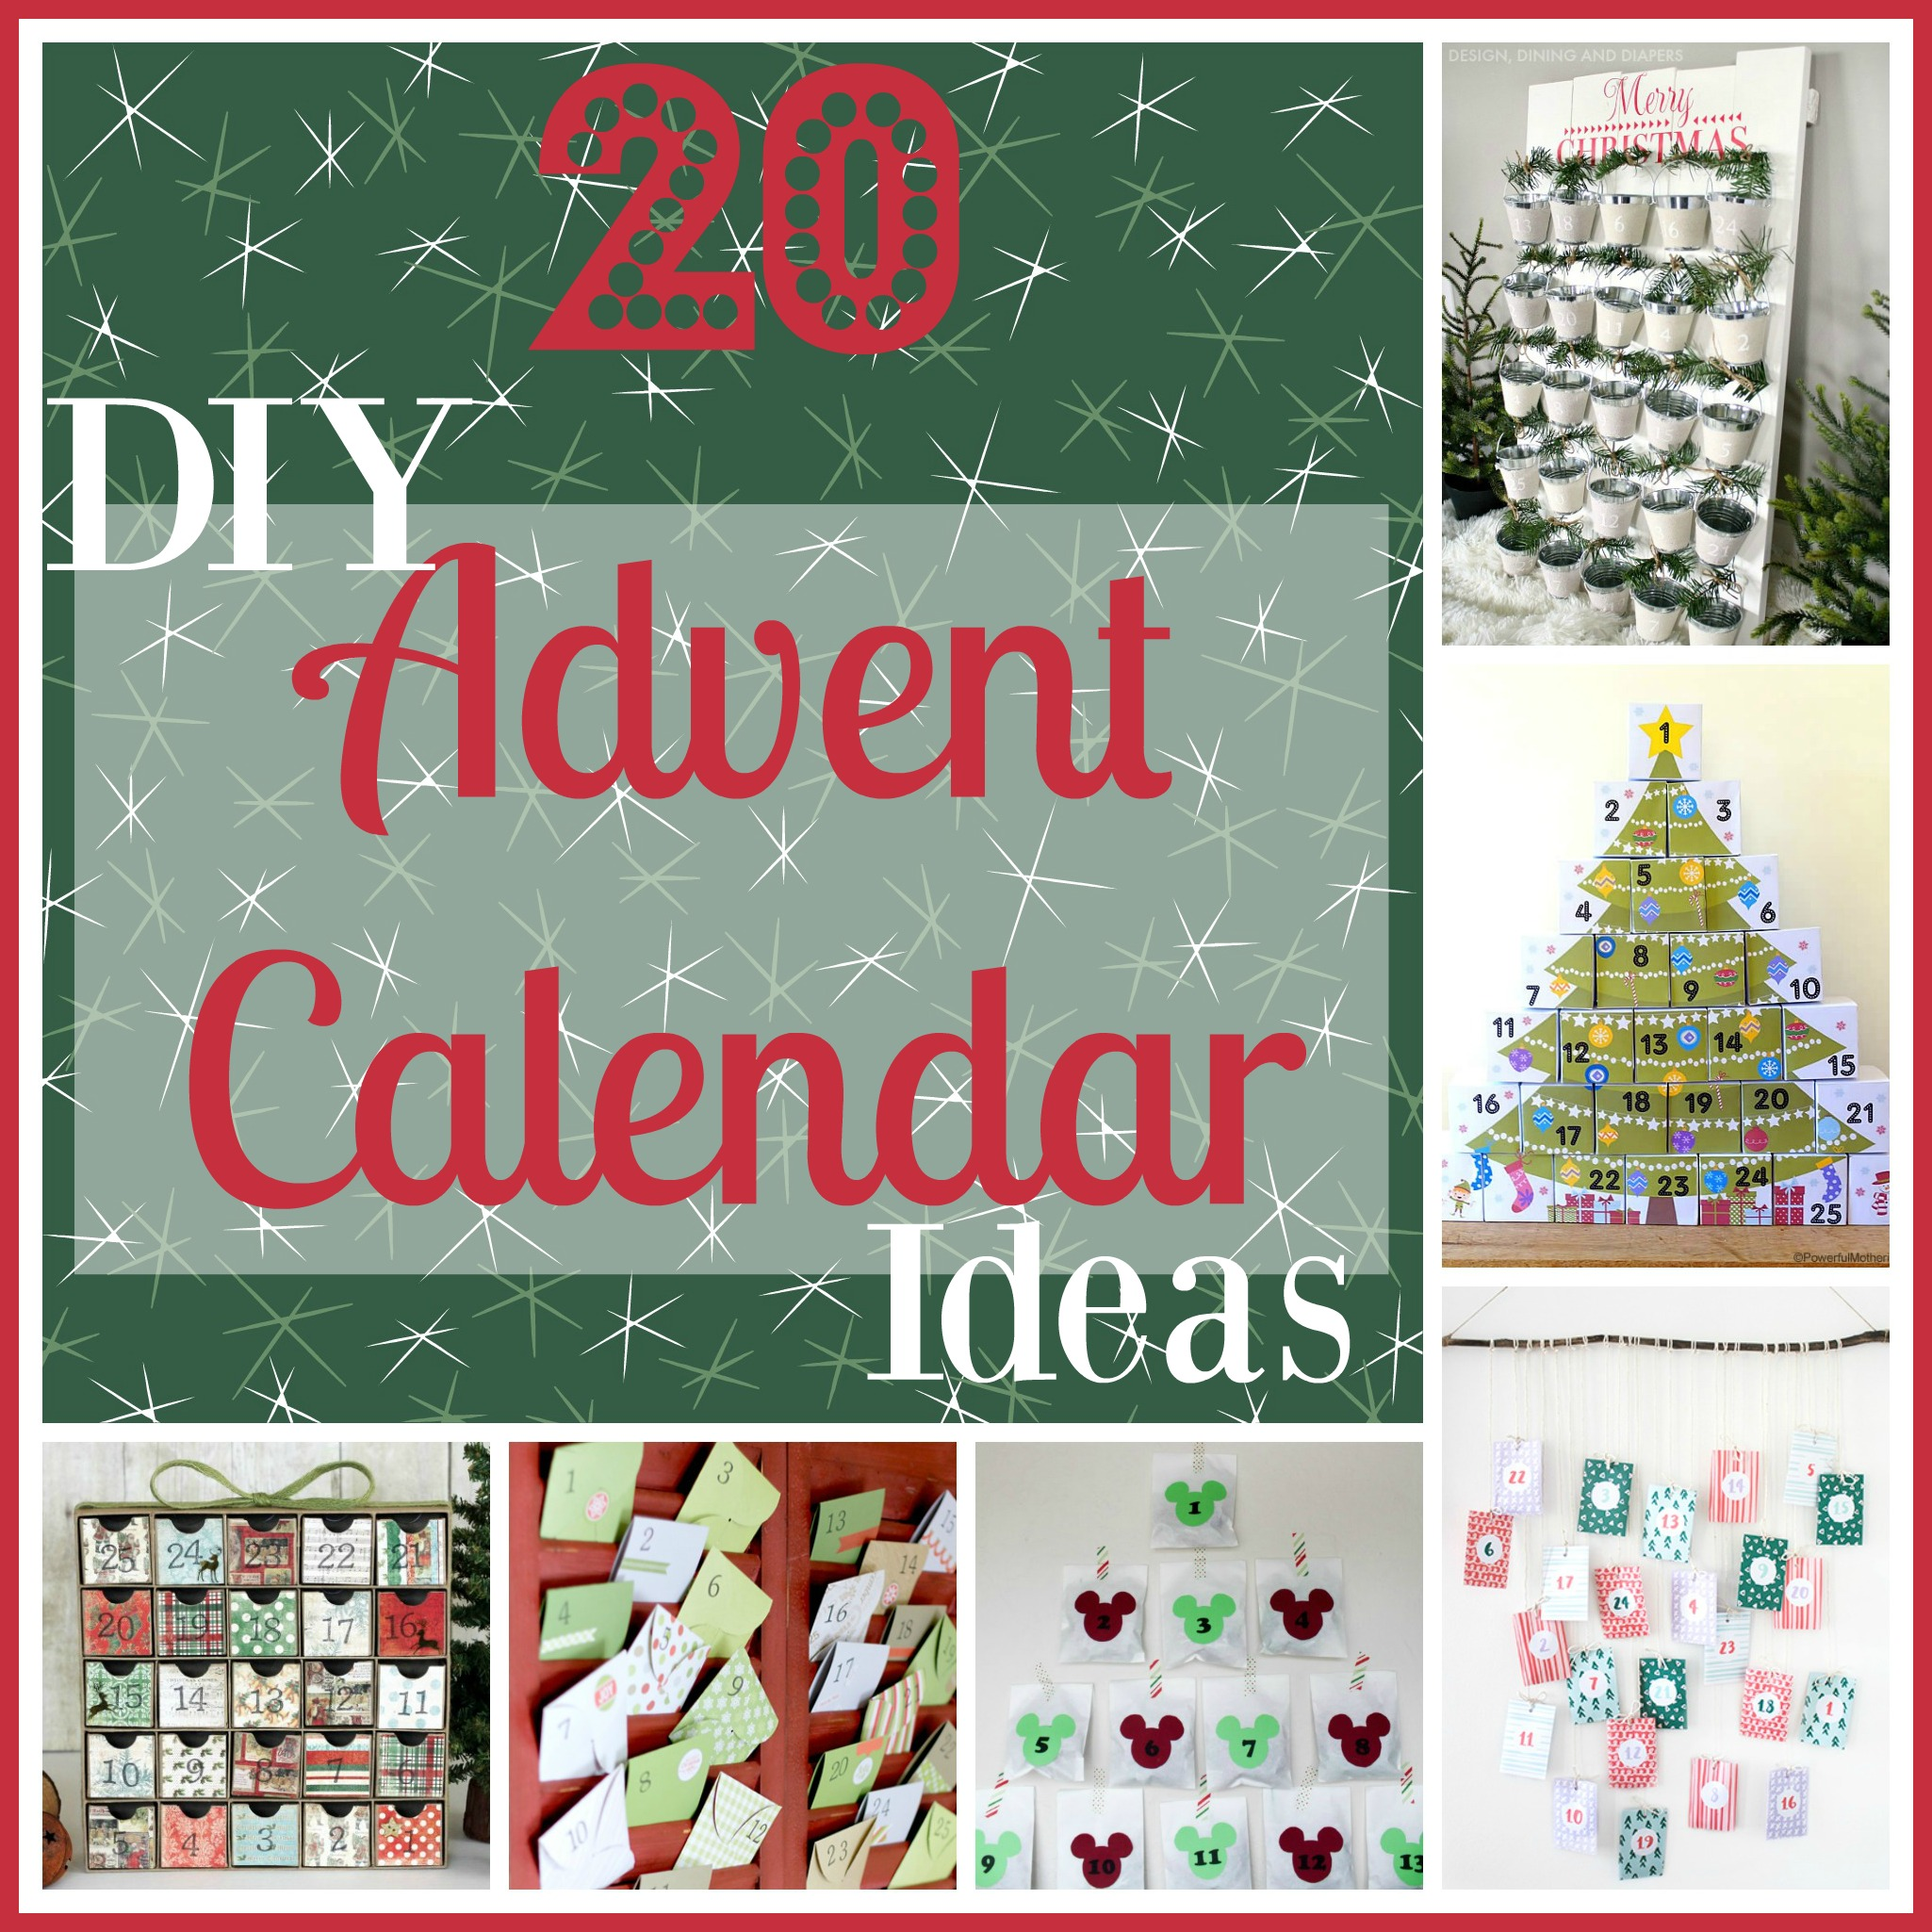 20 diy christmas advent calendar ideas livin the mommy life 20 diy advent calendar ideas solutioingenieria Gallery